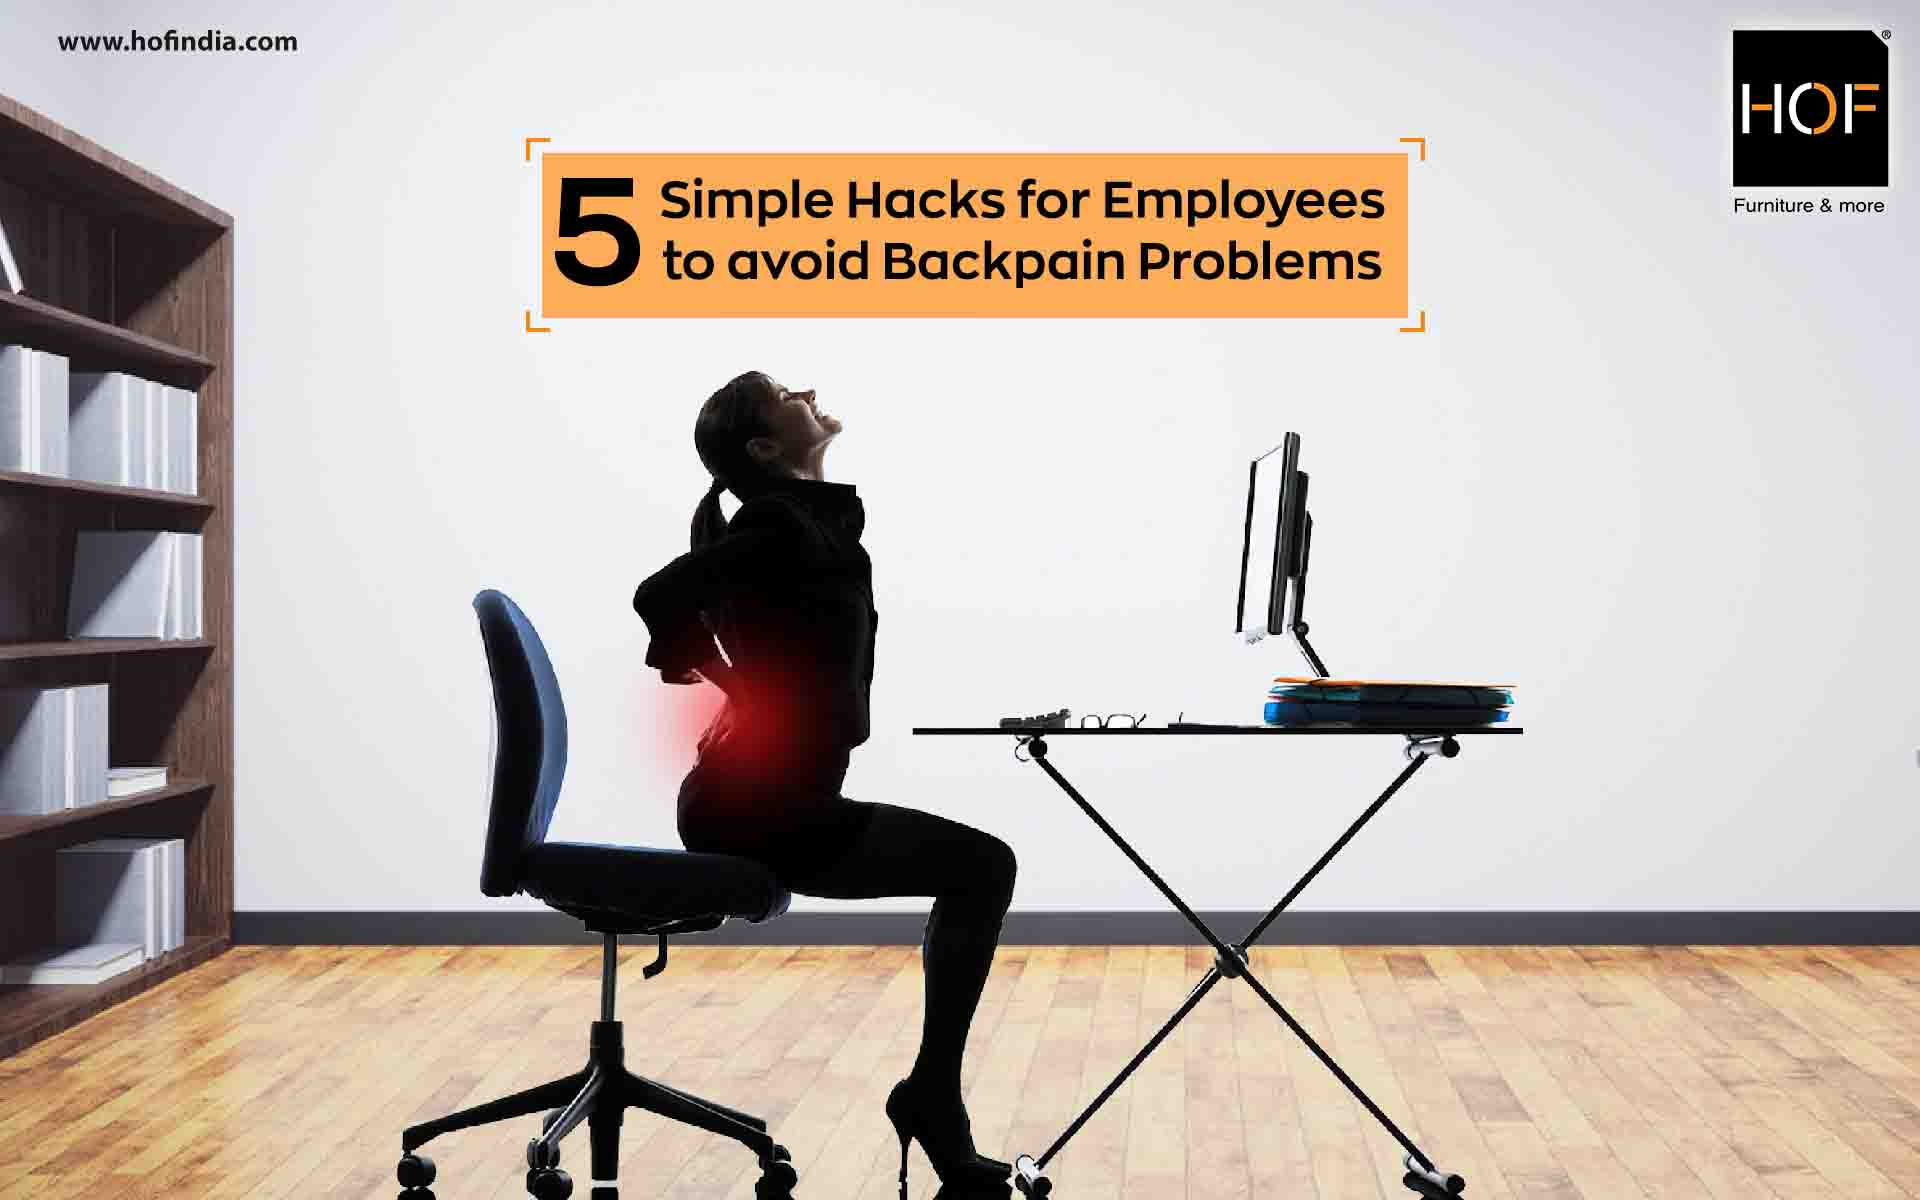 Office Chairs - Simple hacks to avoid Backpain